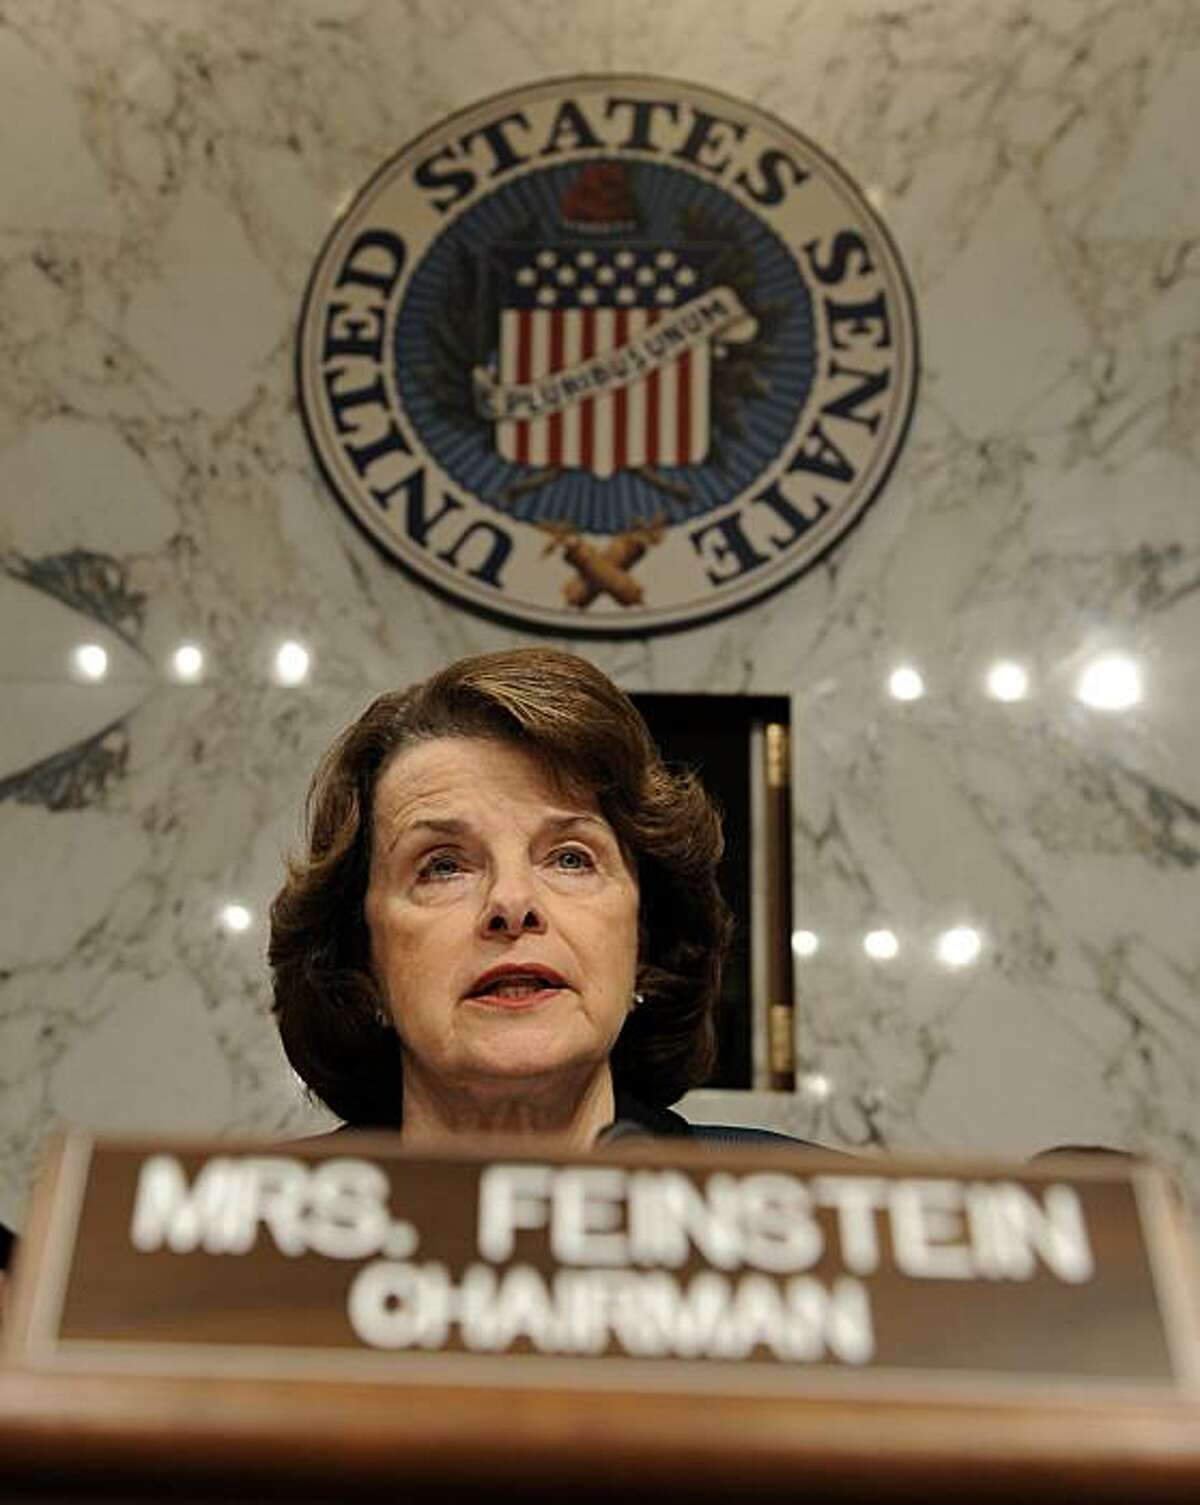 Senate Intelligence Committee Chairwoman Sen. Dianne Feinstein, D-Calif. delivers her opening remarks on Capitol Hill in Washington, Thursday, Jan. 22, 2009, during the committee's nomination hearing for National Intelligence Director-designate Dennis Blair. (AP Photo/Susan Walsh)